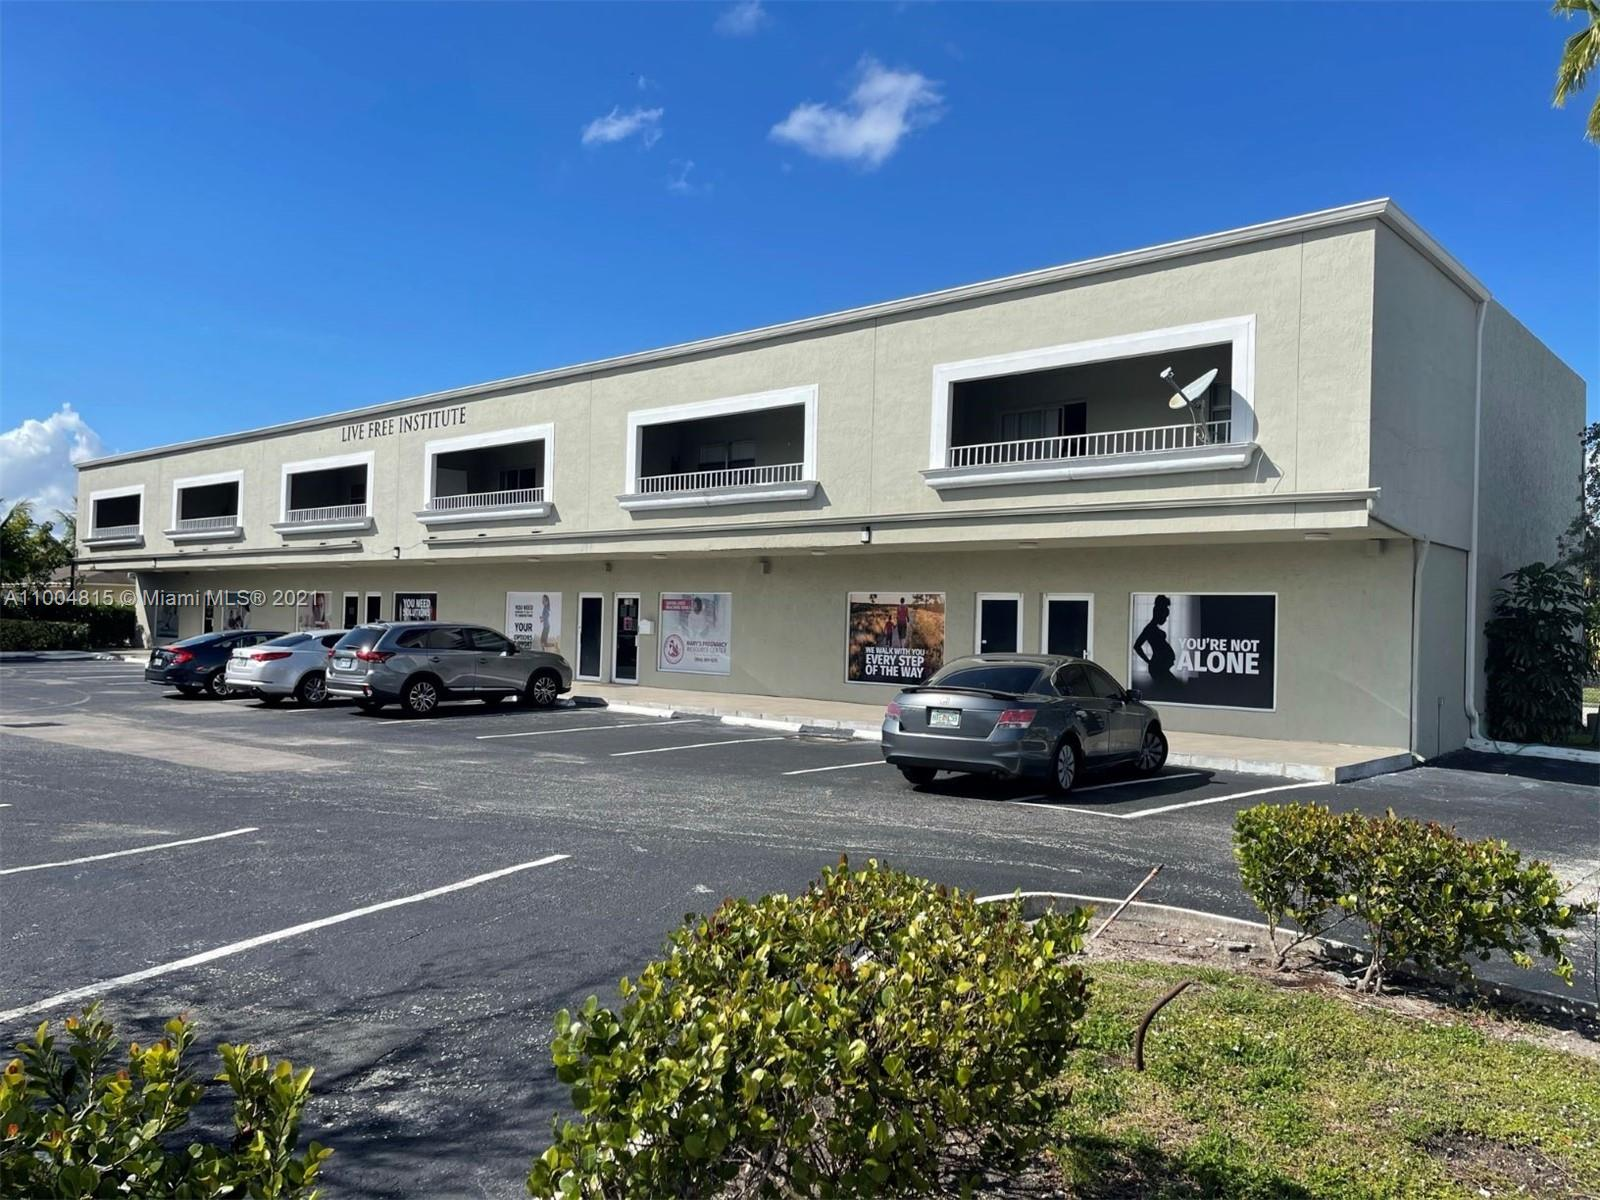 7701 Davie Road Extension, Davie, Florida 33024